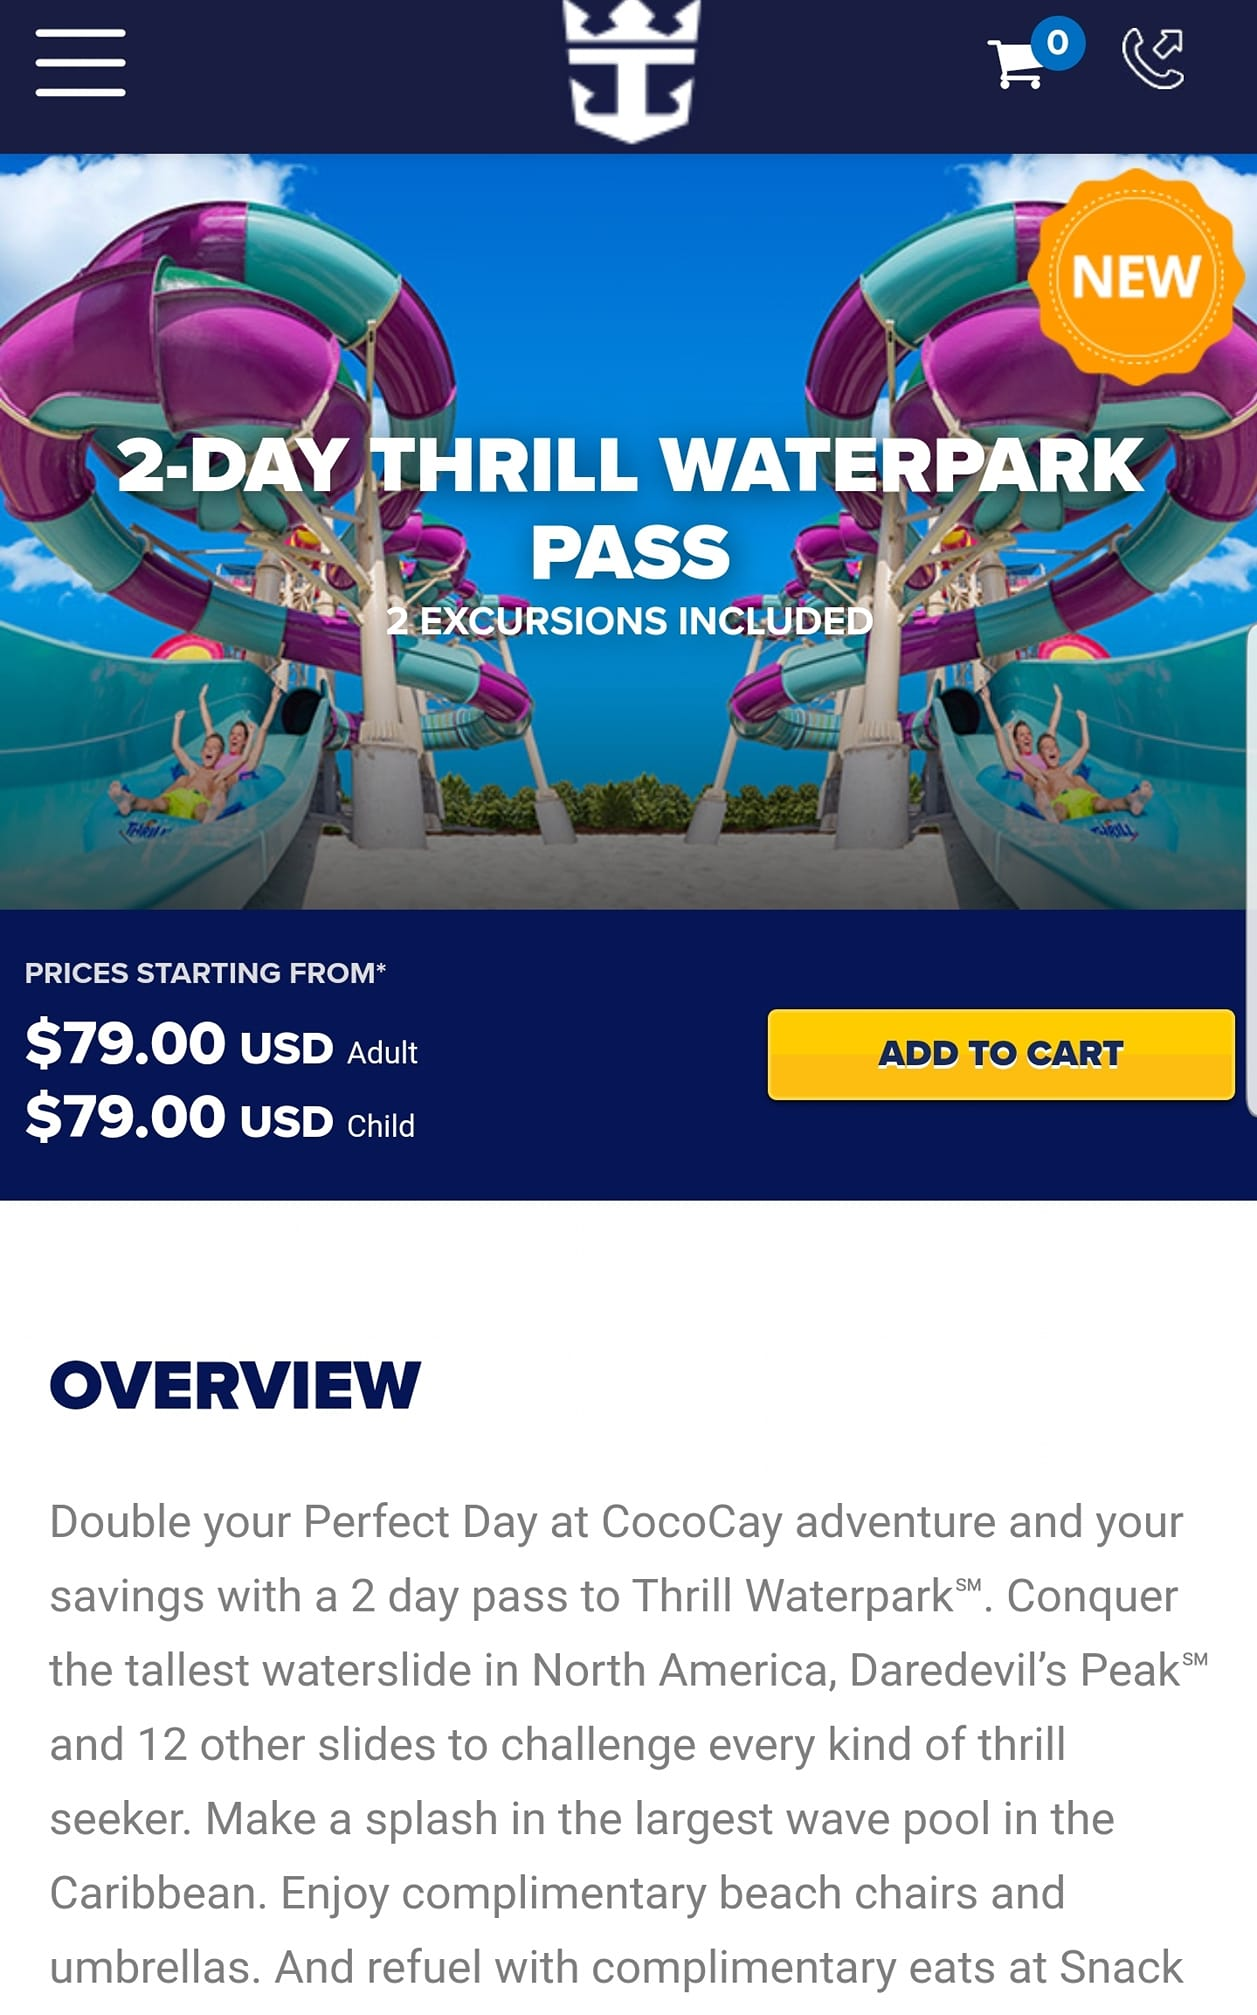 Perfect Day at CocoCay | Royal Caribbean Blog